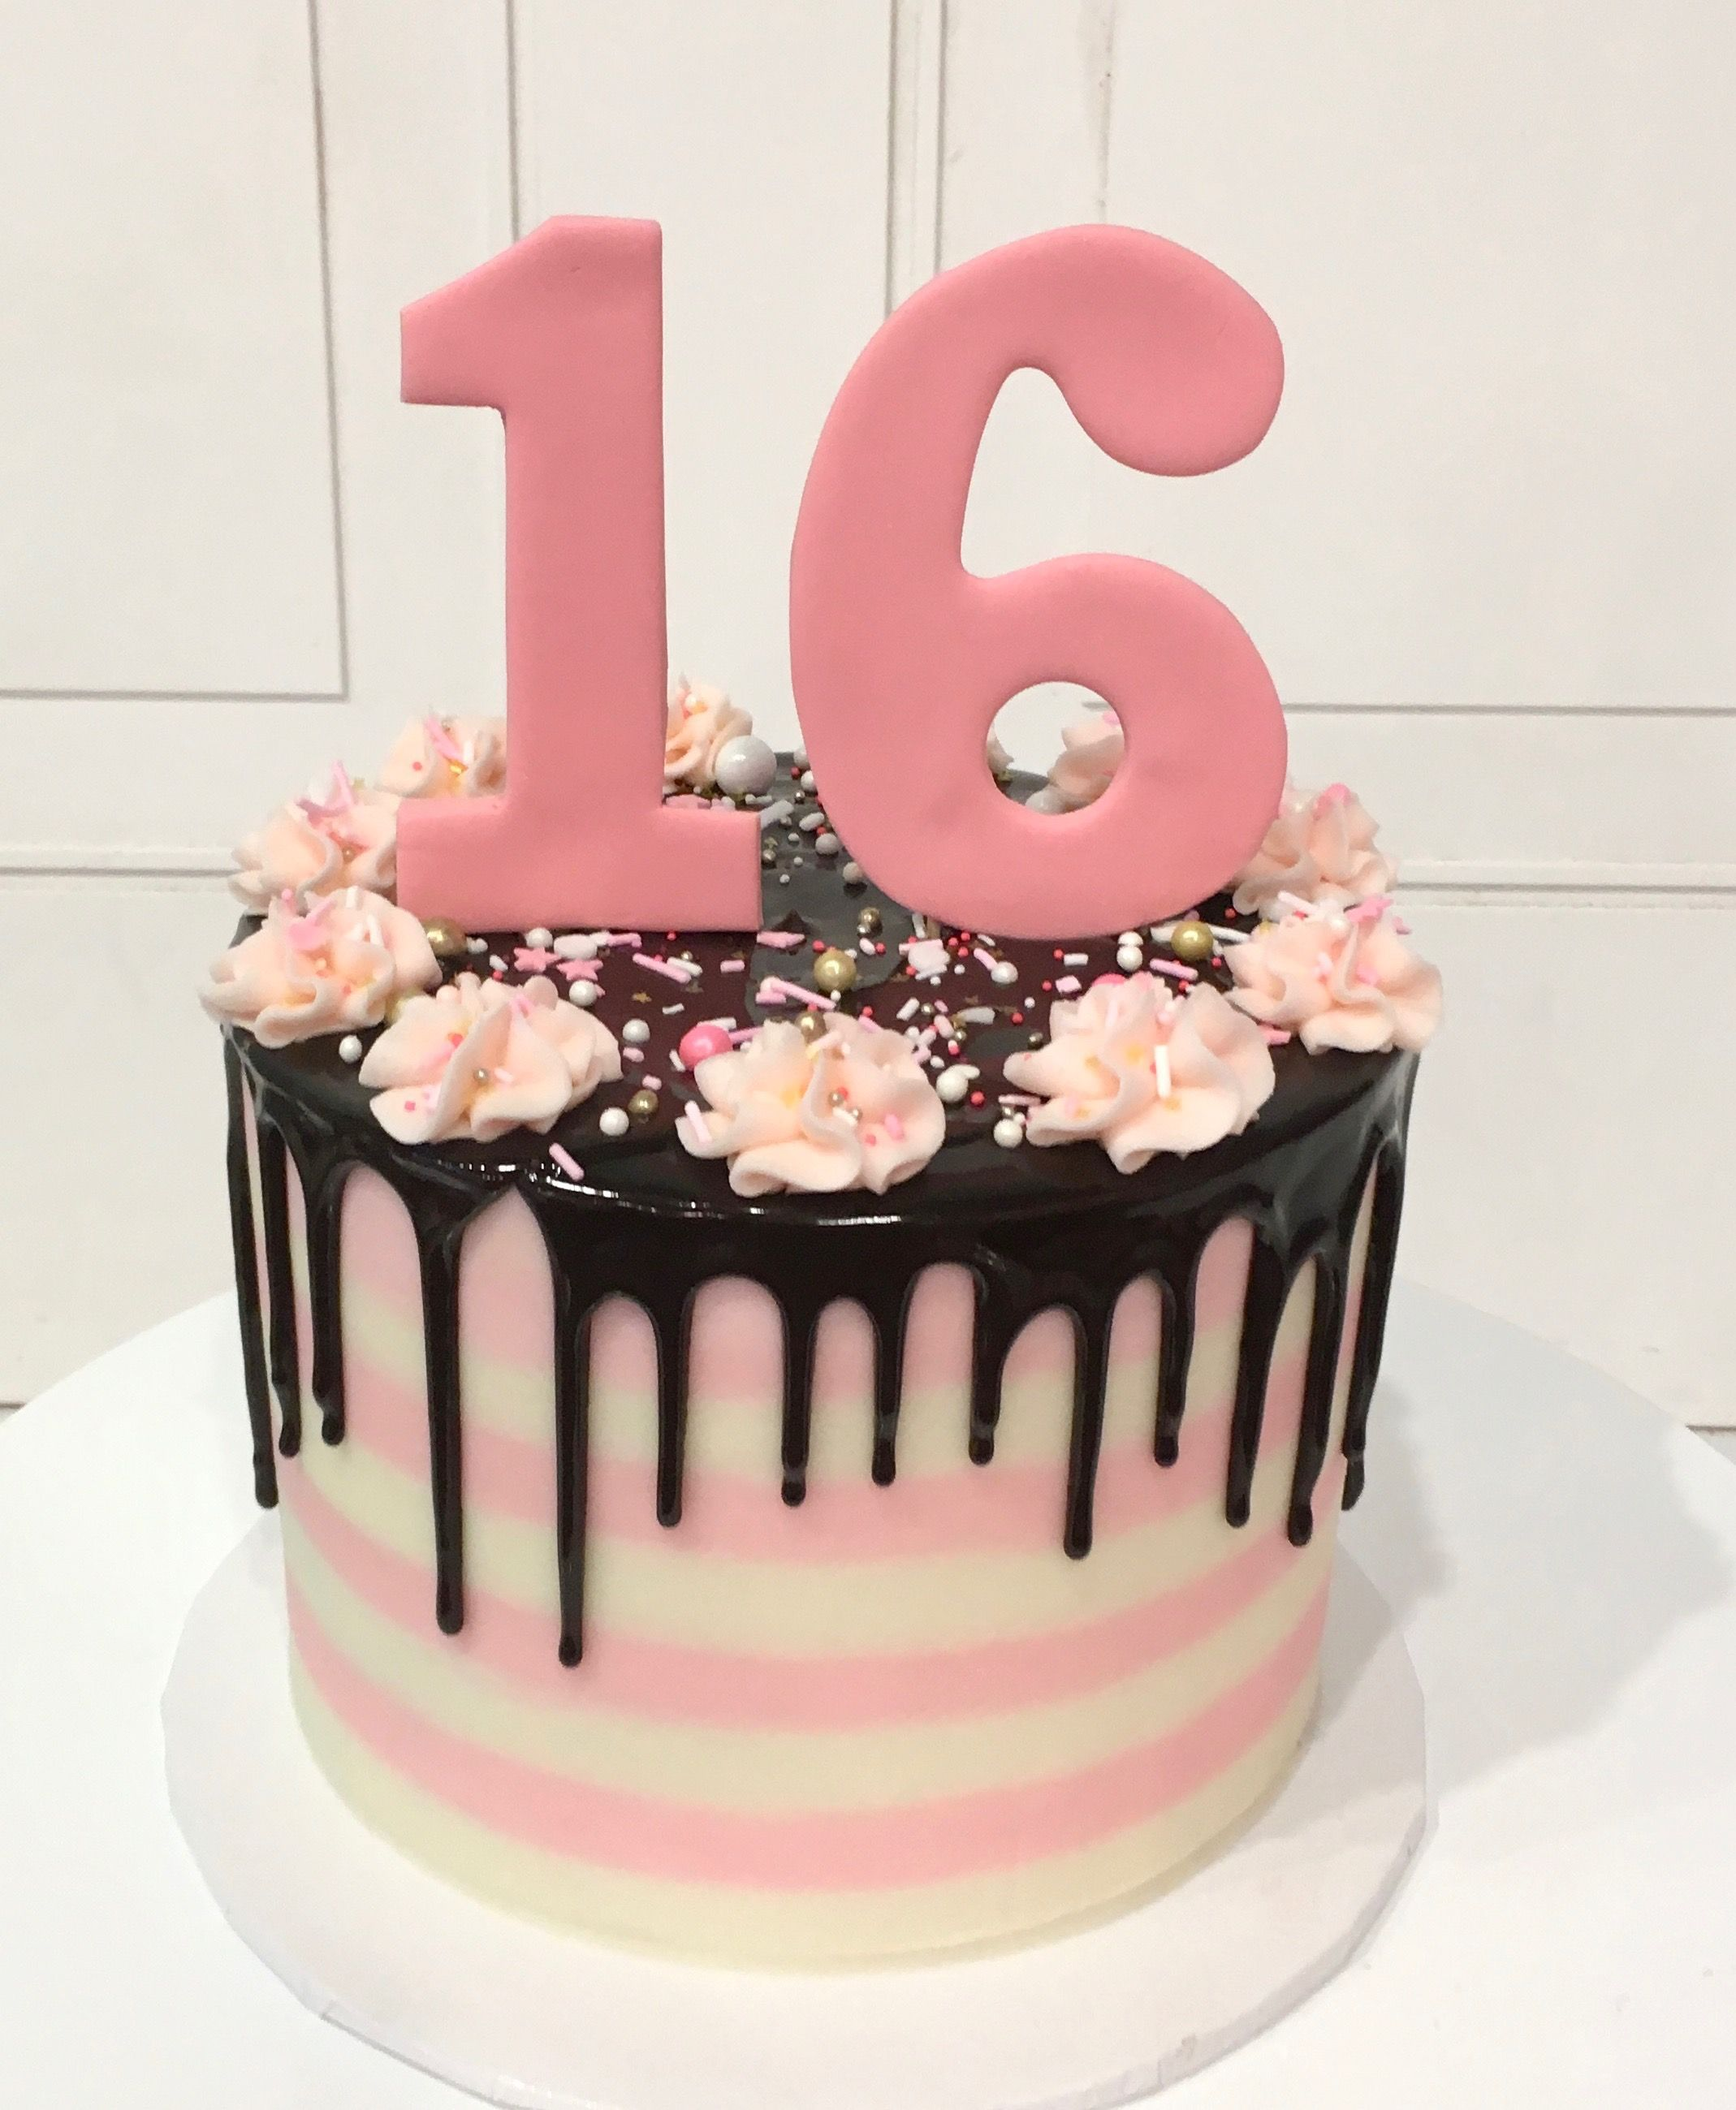 Miraculous Sweet Sixteen Pink And White Cake With Chocolate Ganache Drip By 3 Funny Birthday Cards Online Inifodamsfinfo